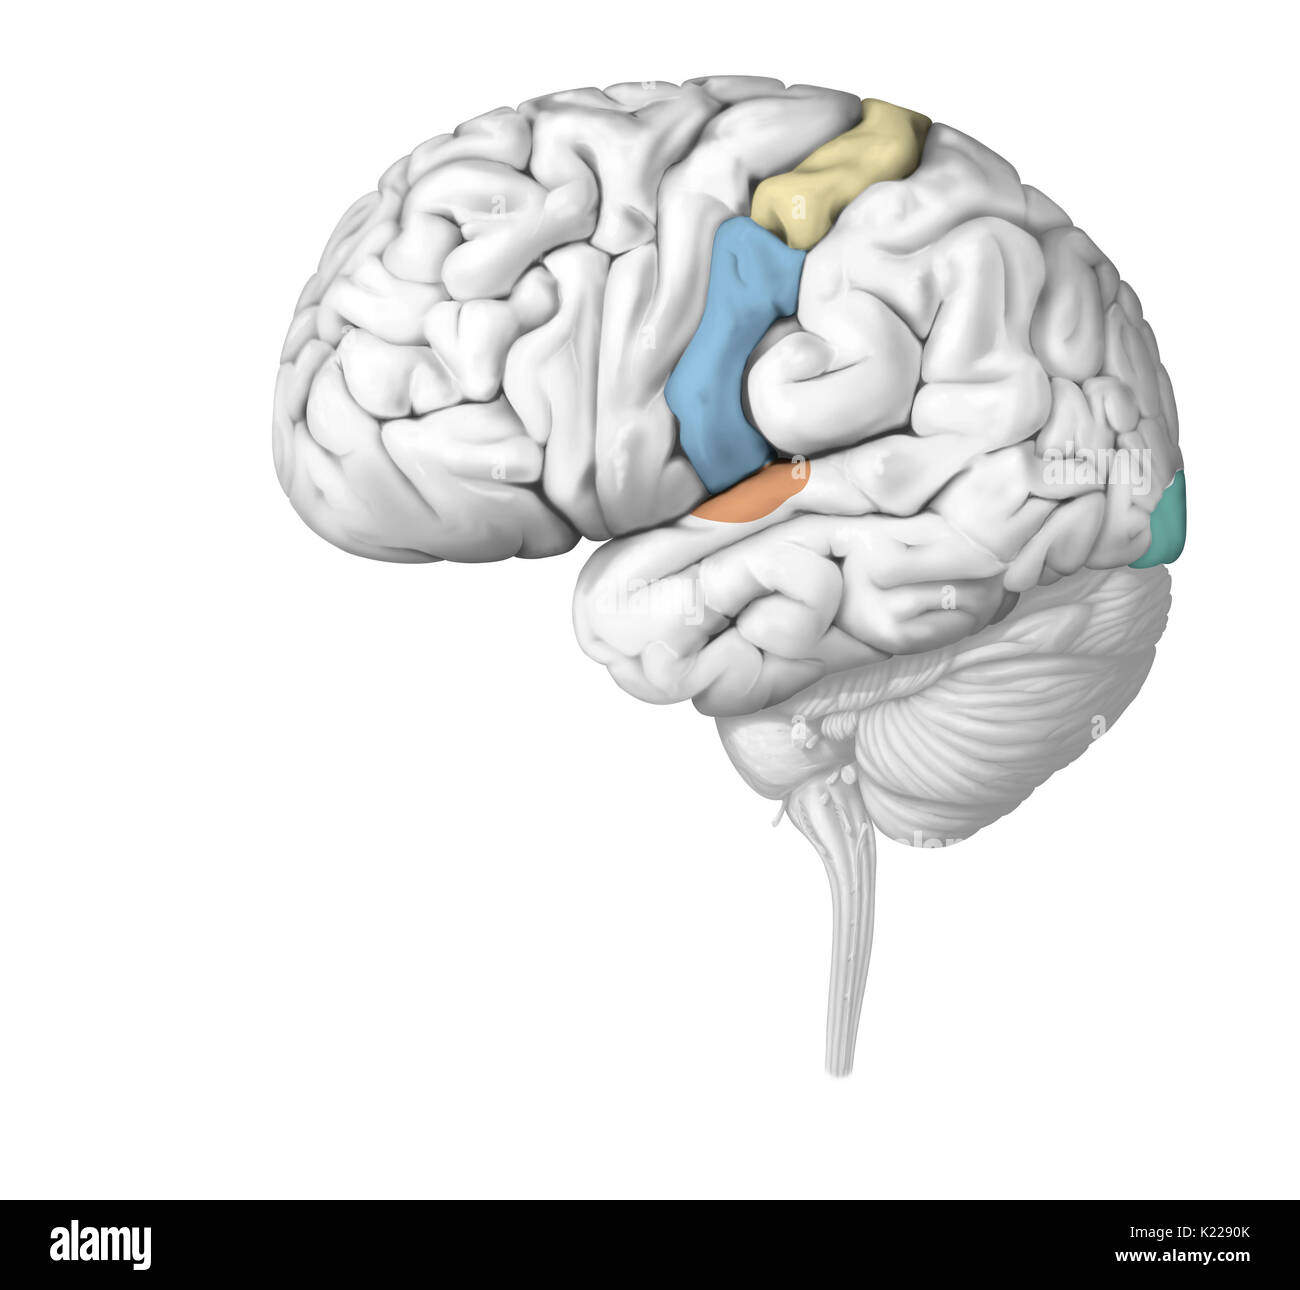 The nerve impulses are analyzed in the zones of the brain specific to each sense. Injury of a sensory organ can seriously affect its operation. - Stock Image